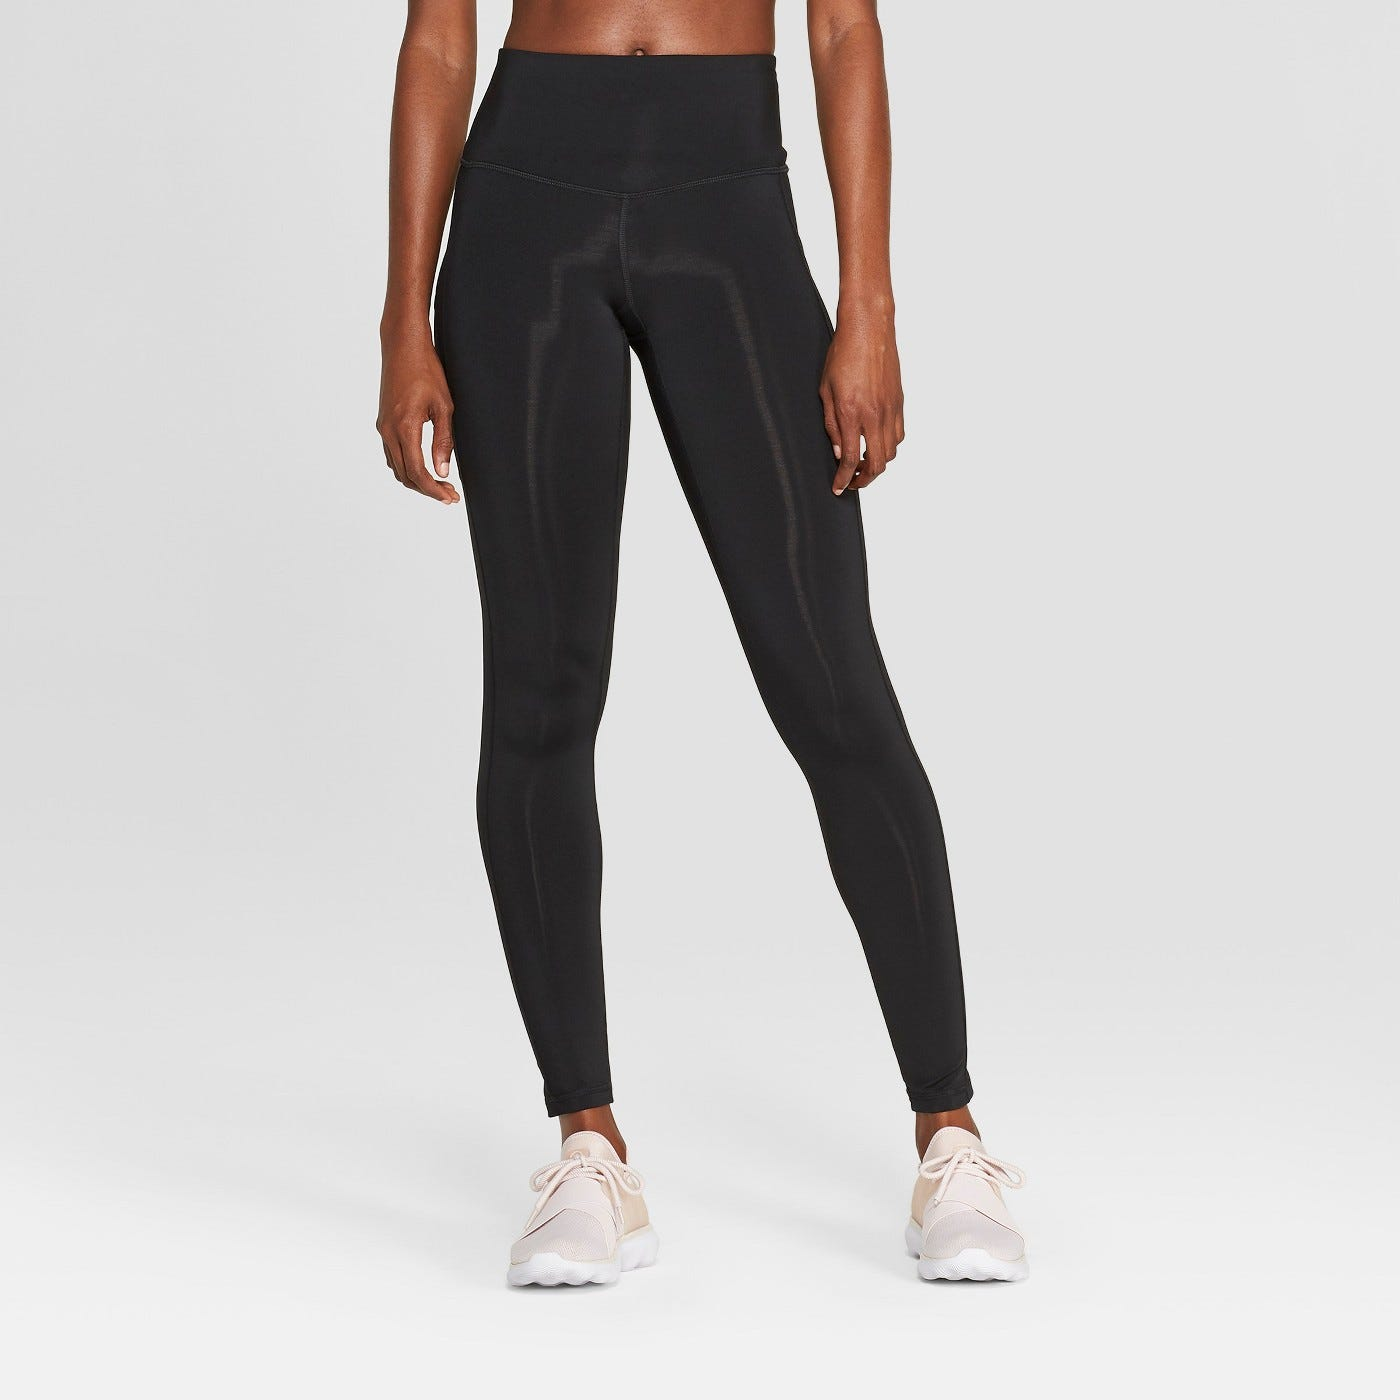 fb9d55a9eeb Best Black Leggings - Reviews On Top Brands   Styles